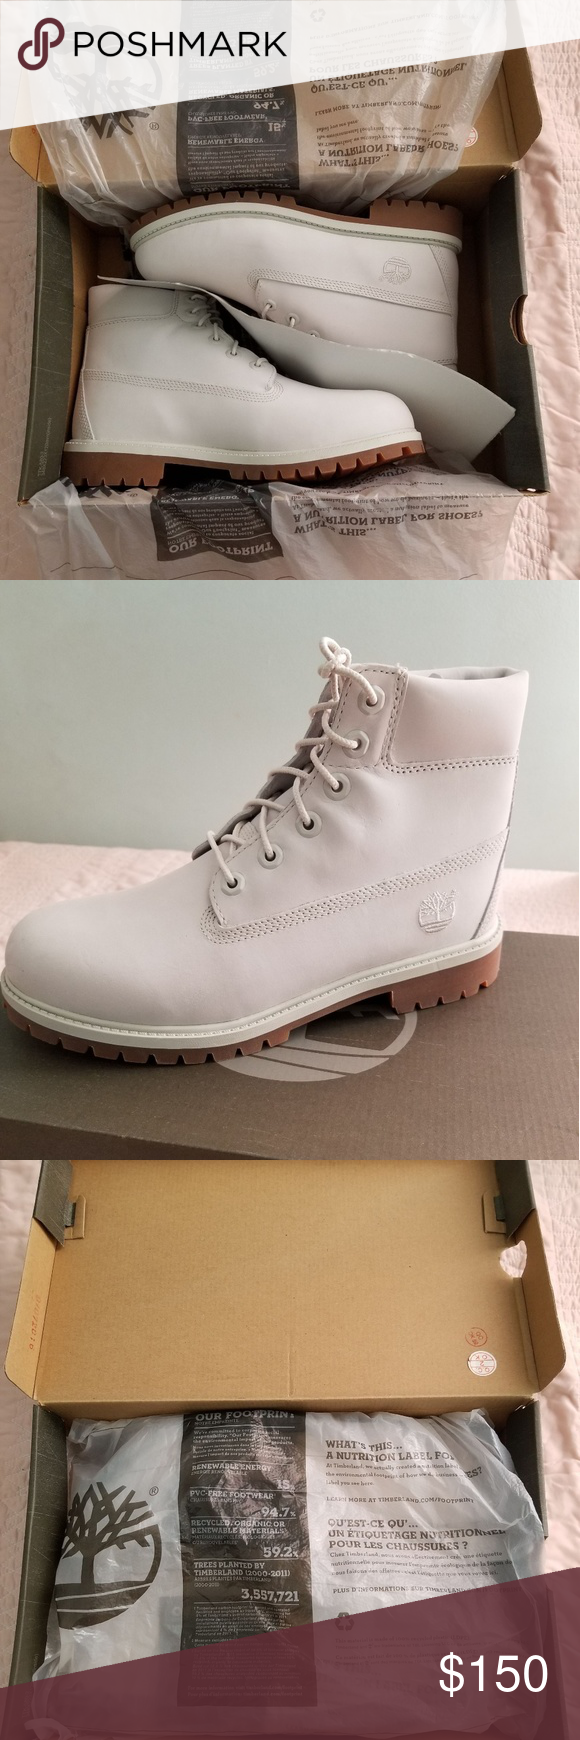 c78ee15b2 Timberland Boot NWT in 2018